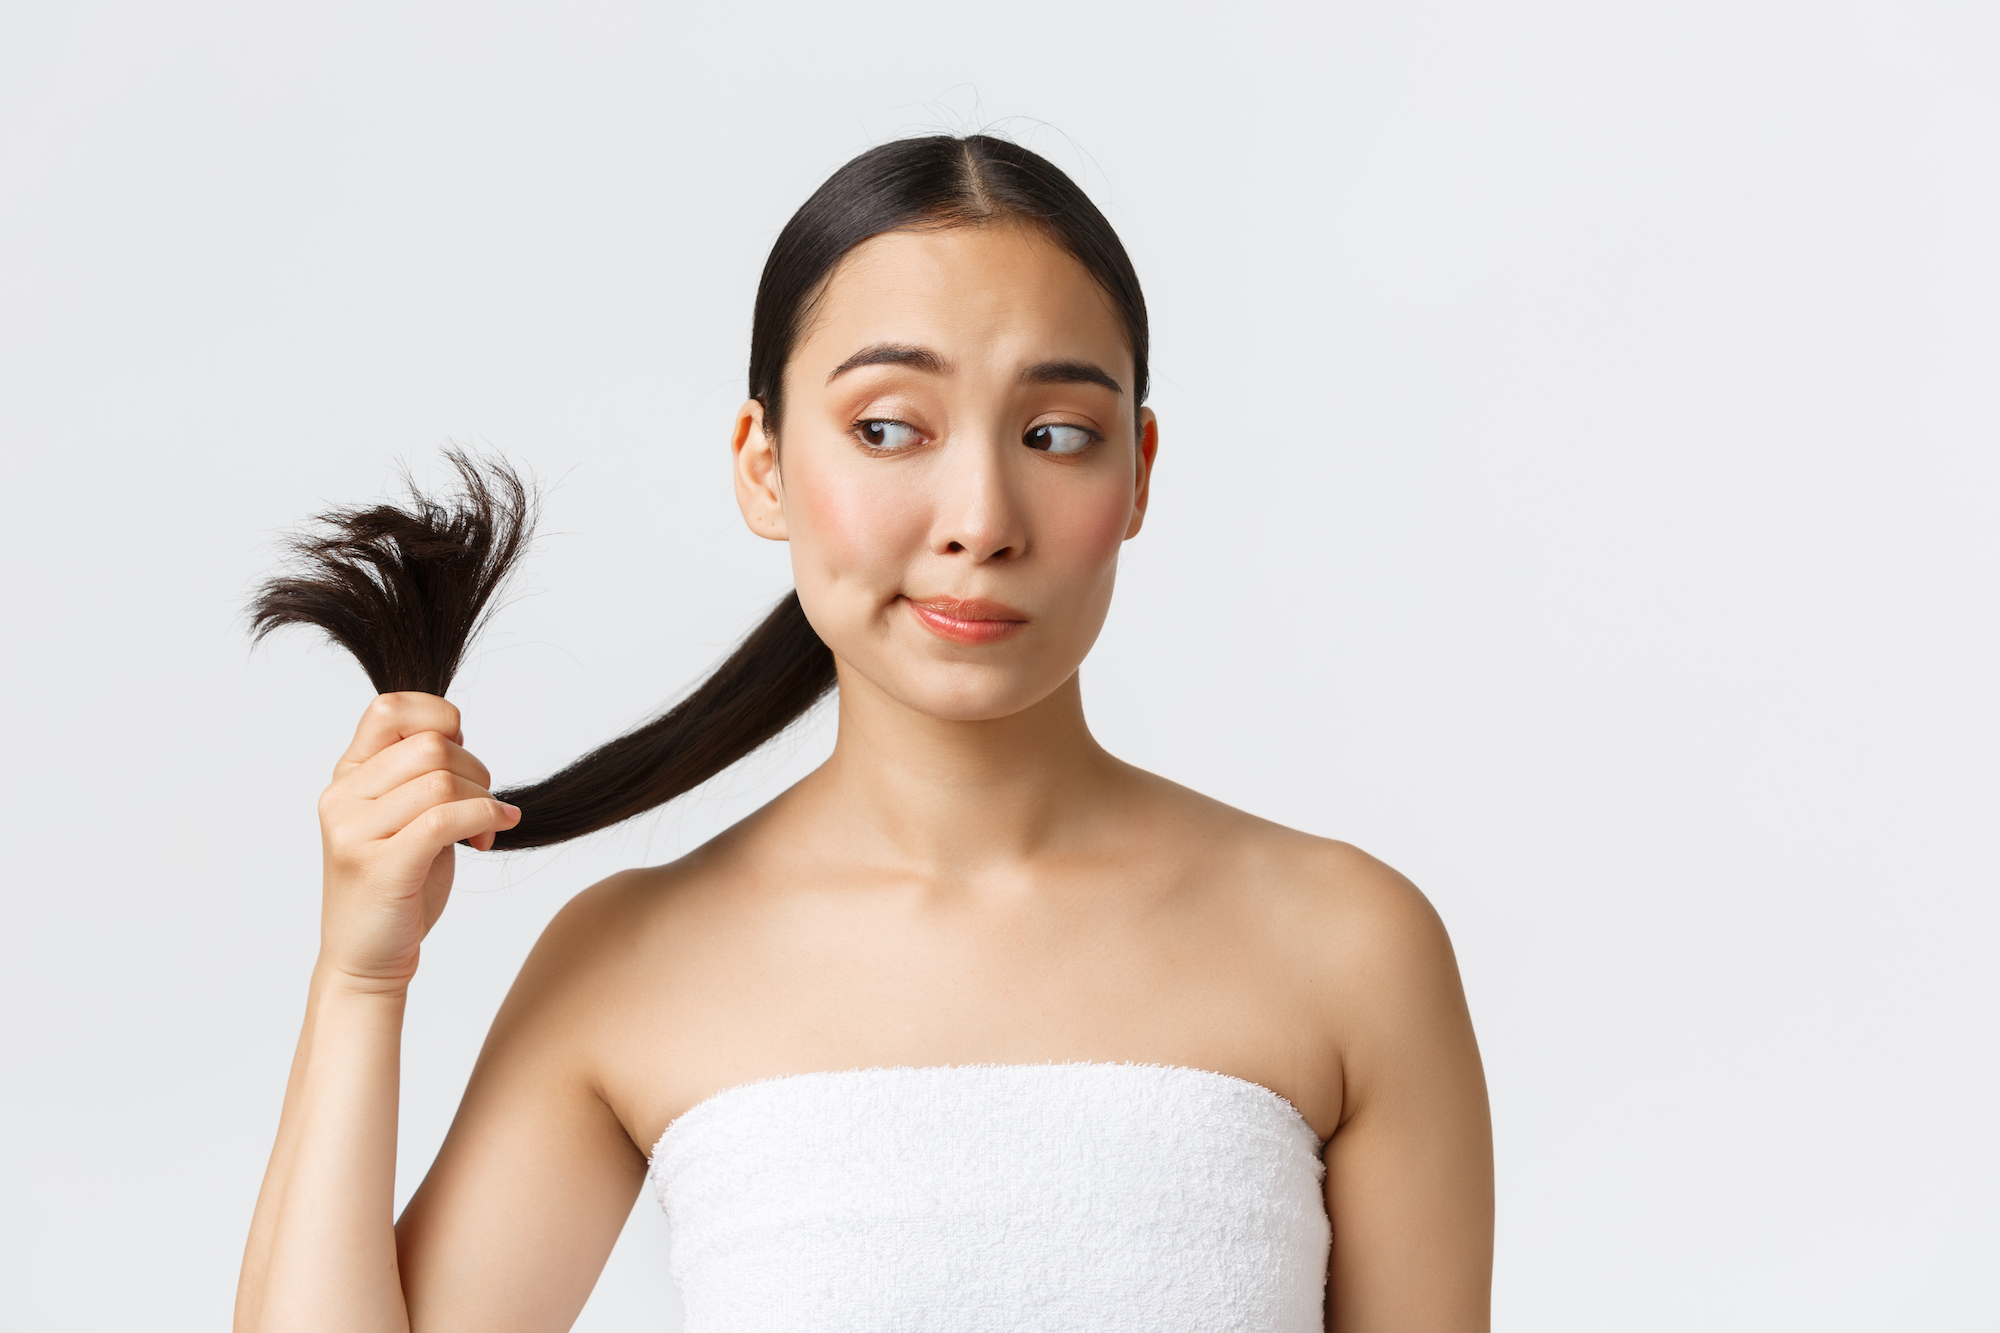 Beauty, hair loss products, shampoo and hair care concept. Troubled beautiful asian woman in bath towel looking at split ends, need hair treatment, standing white background.